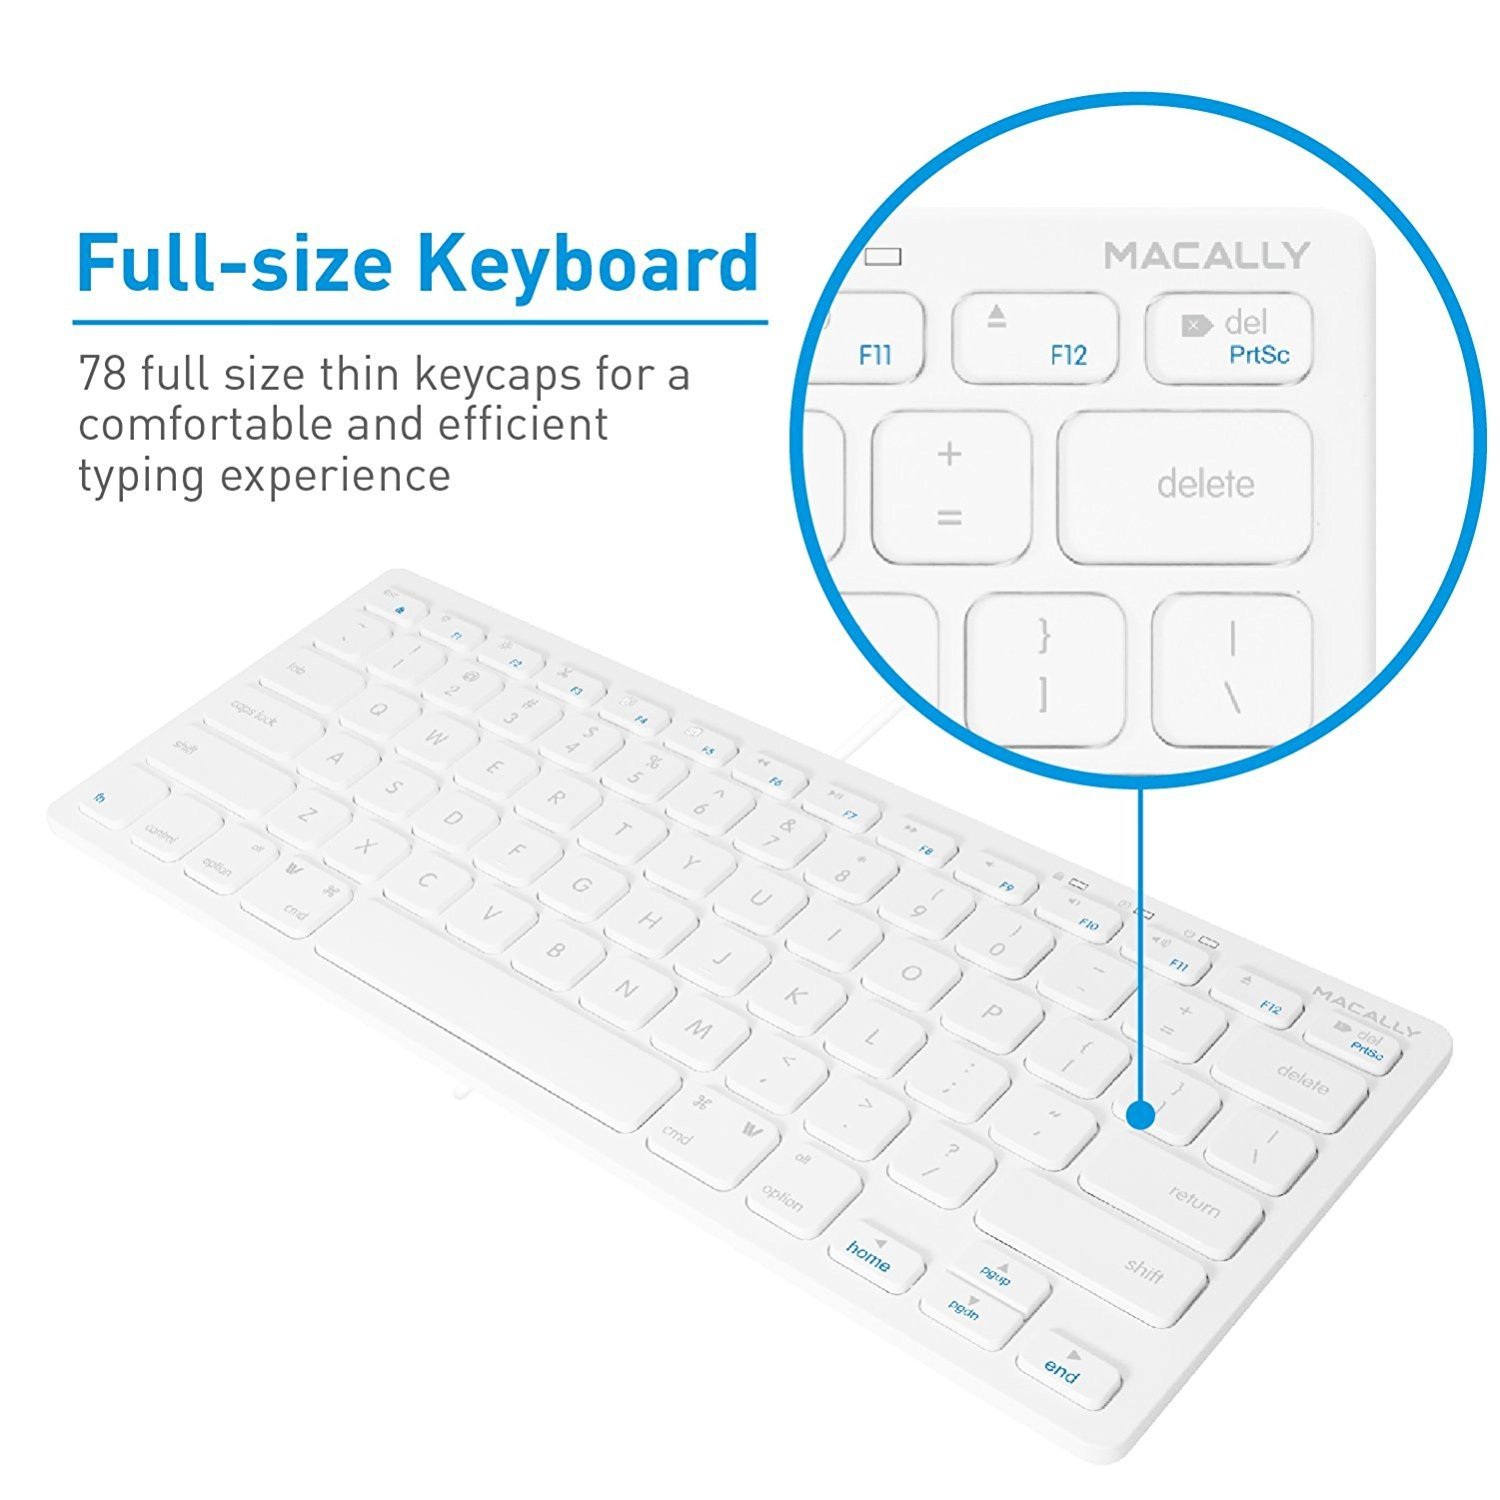 Macally Compact USB Wired Keyboard for Mac and PC - White, SLIMKEYC